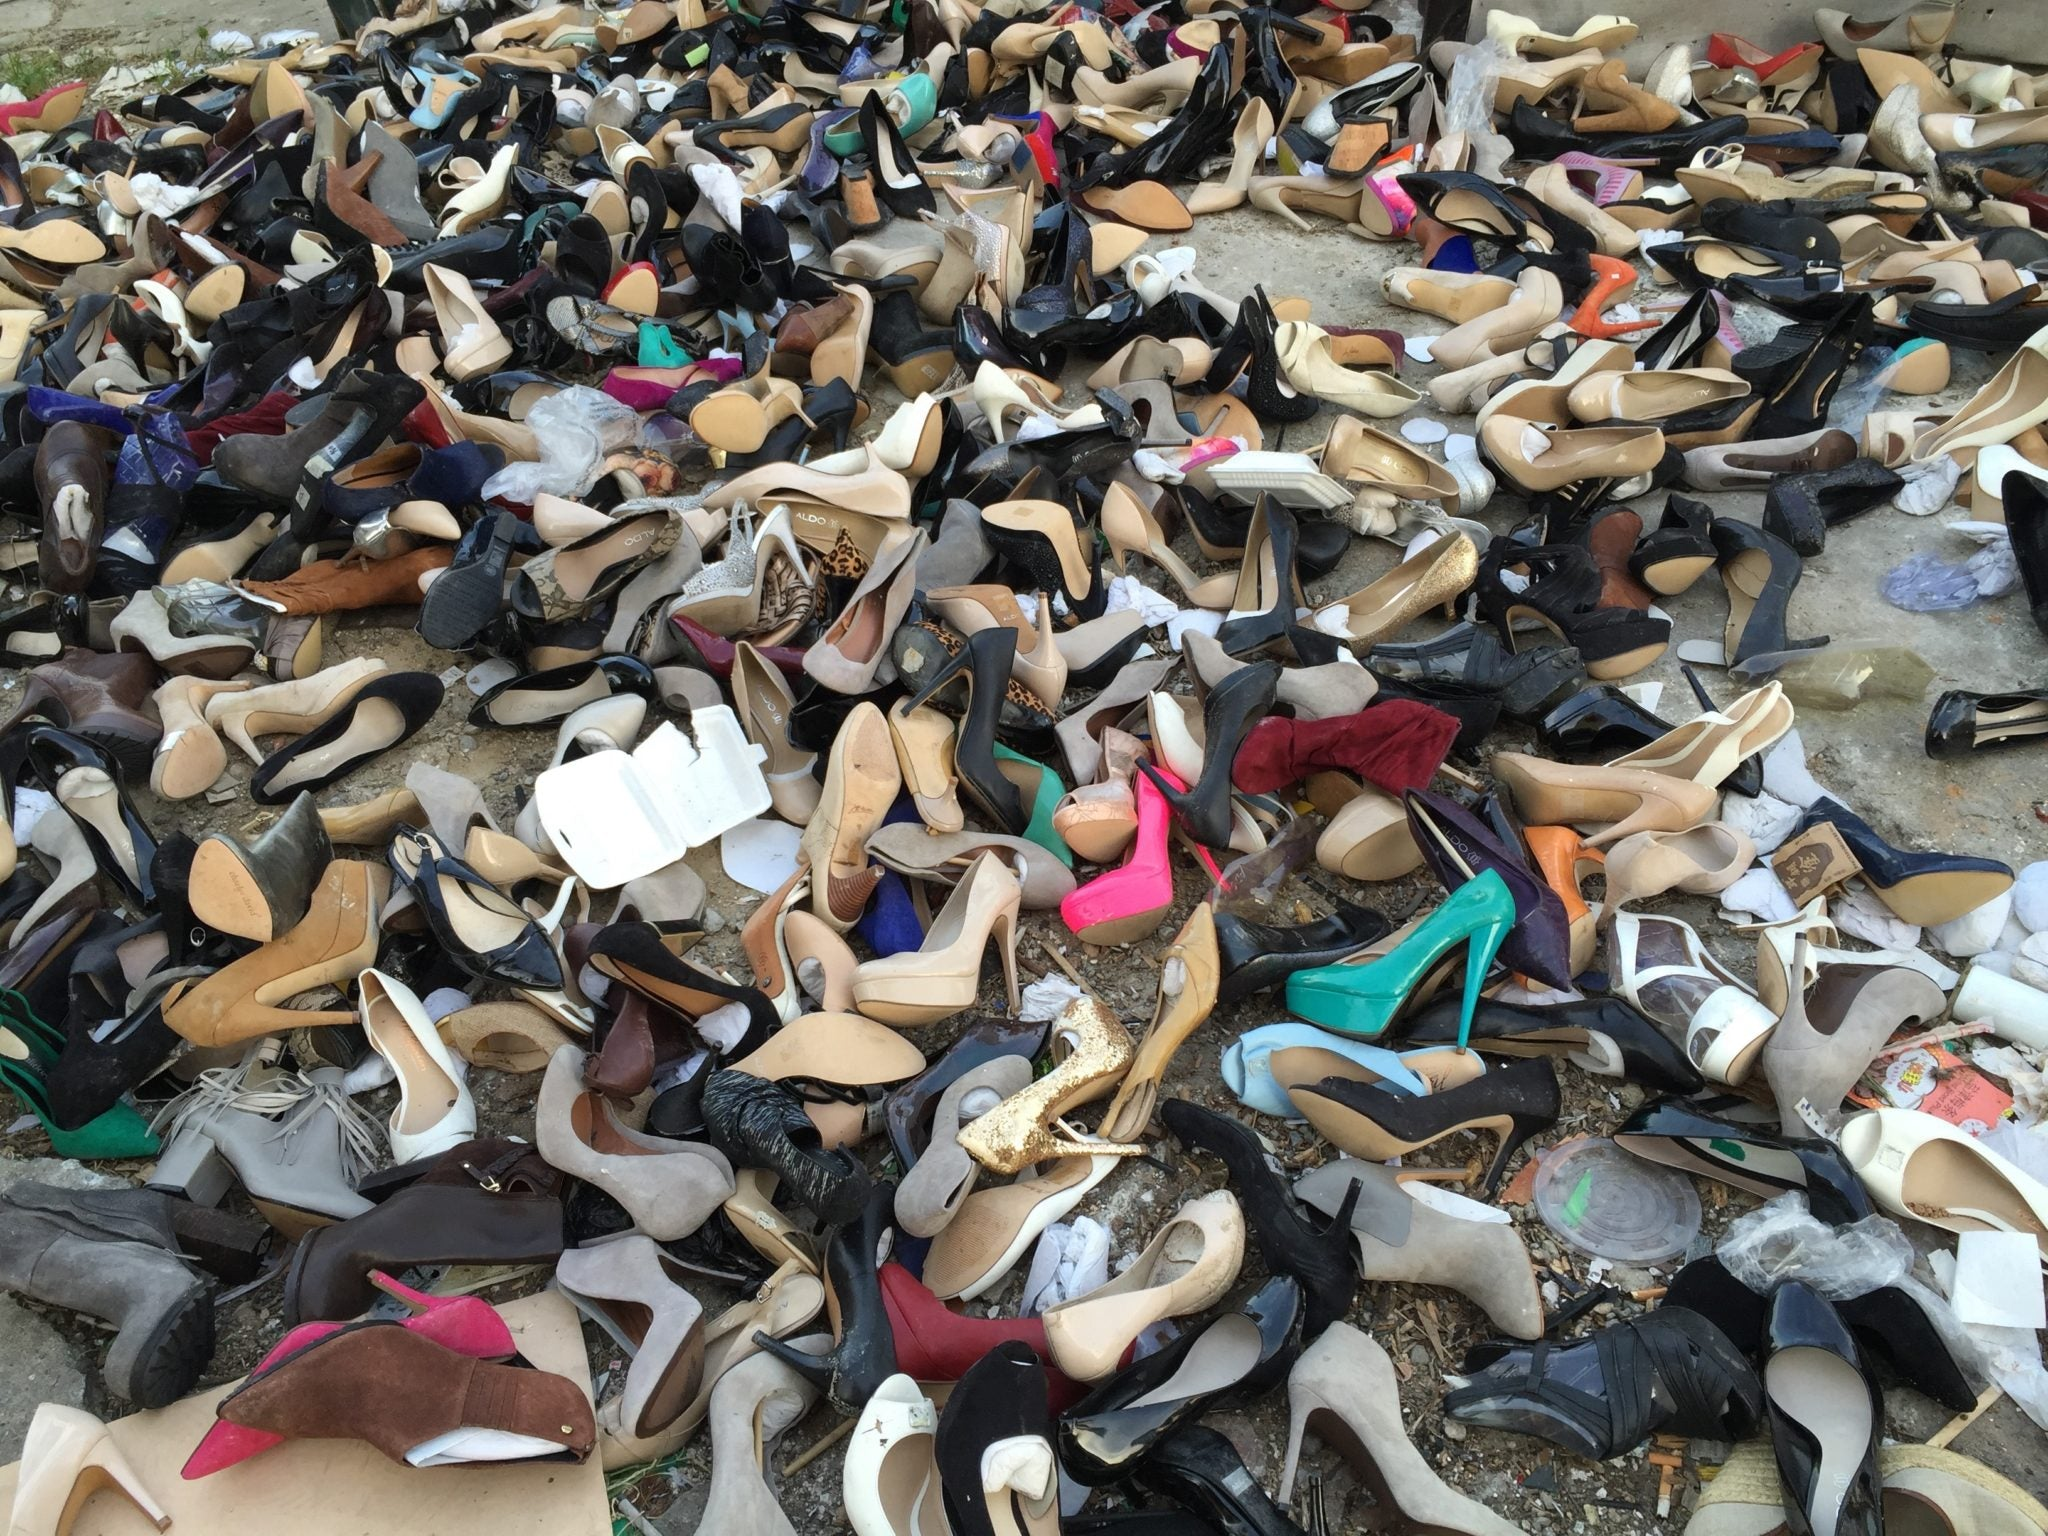 Shoes in landfill